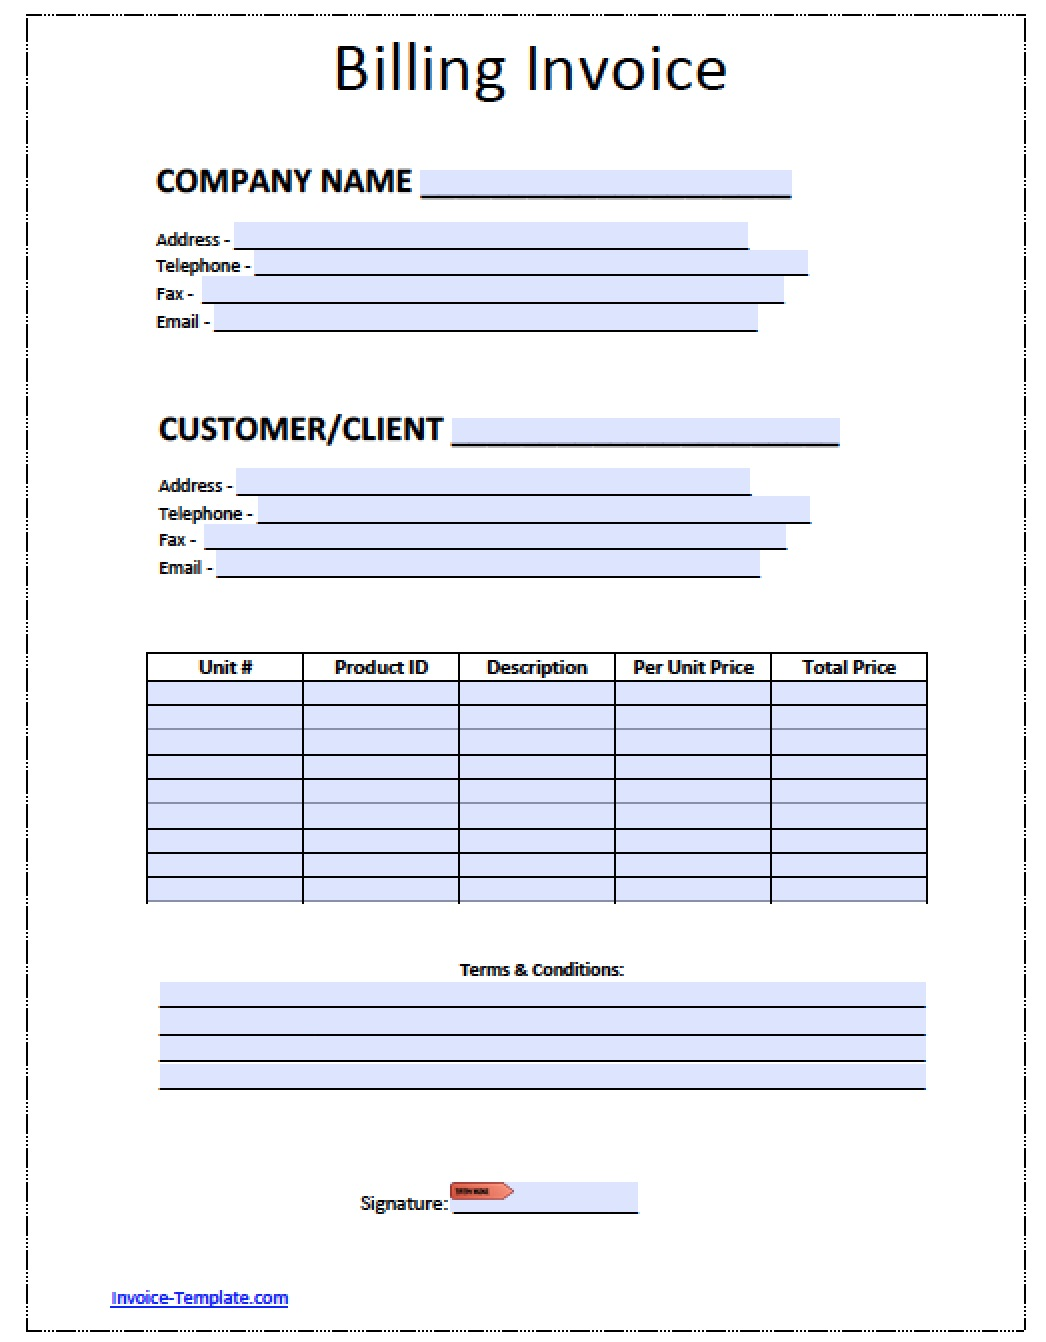 Coolmathgamesus  Outstanding Billing Invoice Invoices Faq U Cloudflare Support Billing  With Heavenly Free Billing Invoice Template  Excel  Pdf  Word Doc  Billing With Lovely Proforma Invoice Doc Also How To Make A Invoice Template In Word In Addition Template Invoice Uk And A Proforma Invoice As Well As Freelance Invoicing Software Additionally Samples Of Invoices For Services From Happytomco With Coolmathgamesus  Heavenly Billing Invoice Invoices Faq U Cloudflare Support Billing  With Lovely Free Billing Invoice Template  Excel  Pdf  Word Doc  Billing And Outstanding Proforma Invoice Doc Also How To Make A Invoice Template In Word In Addition Template Invoice Uk From Happytomco